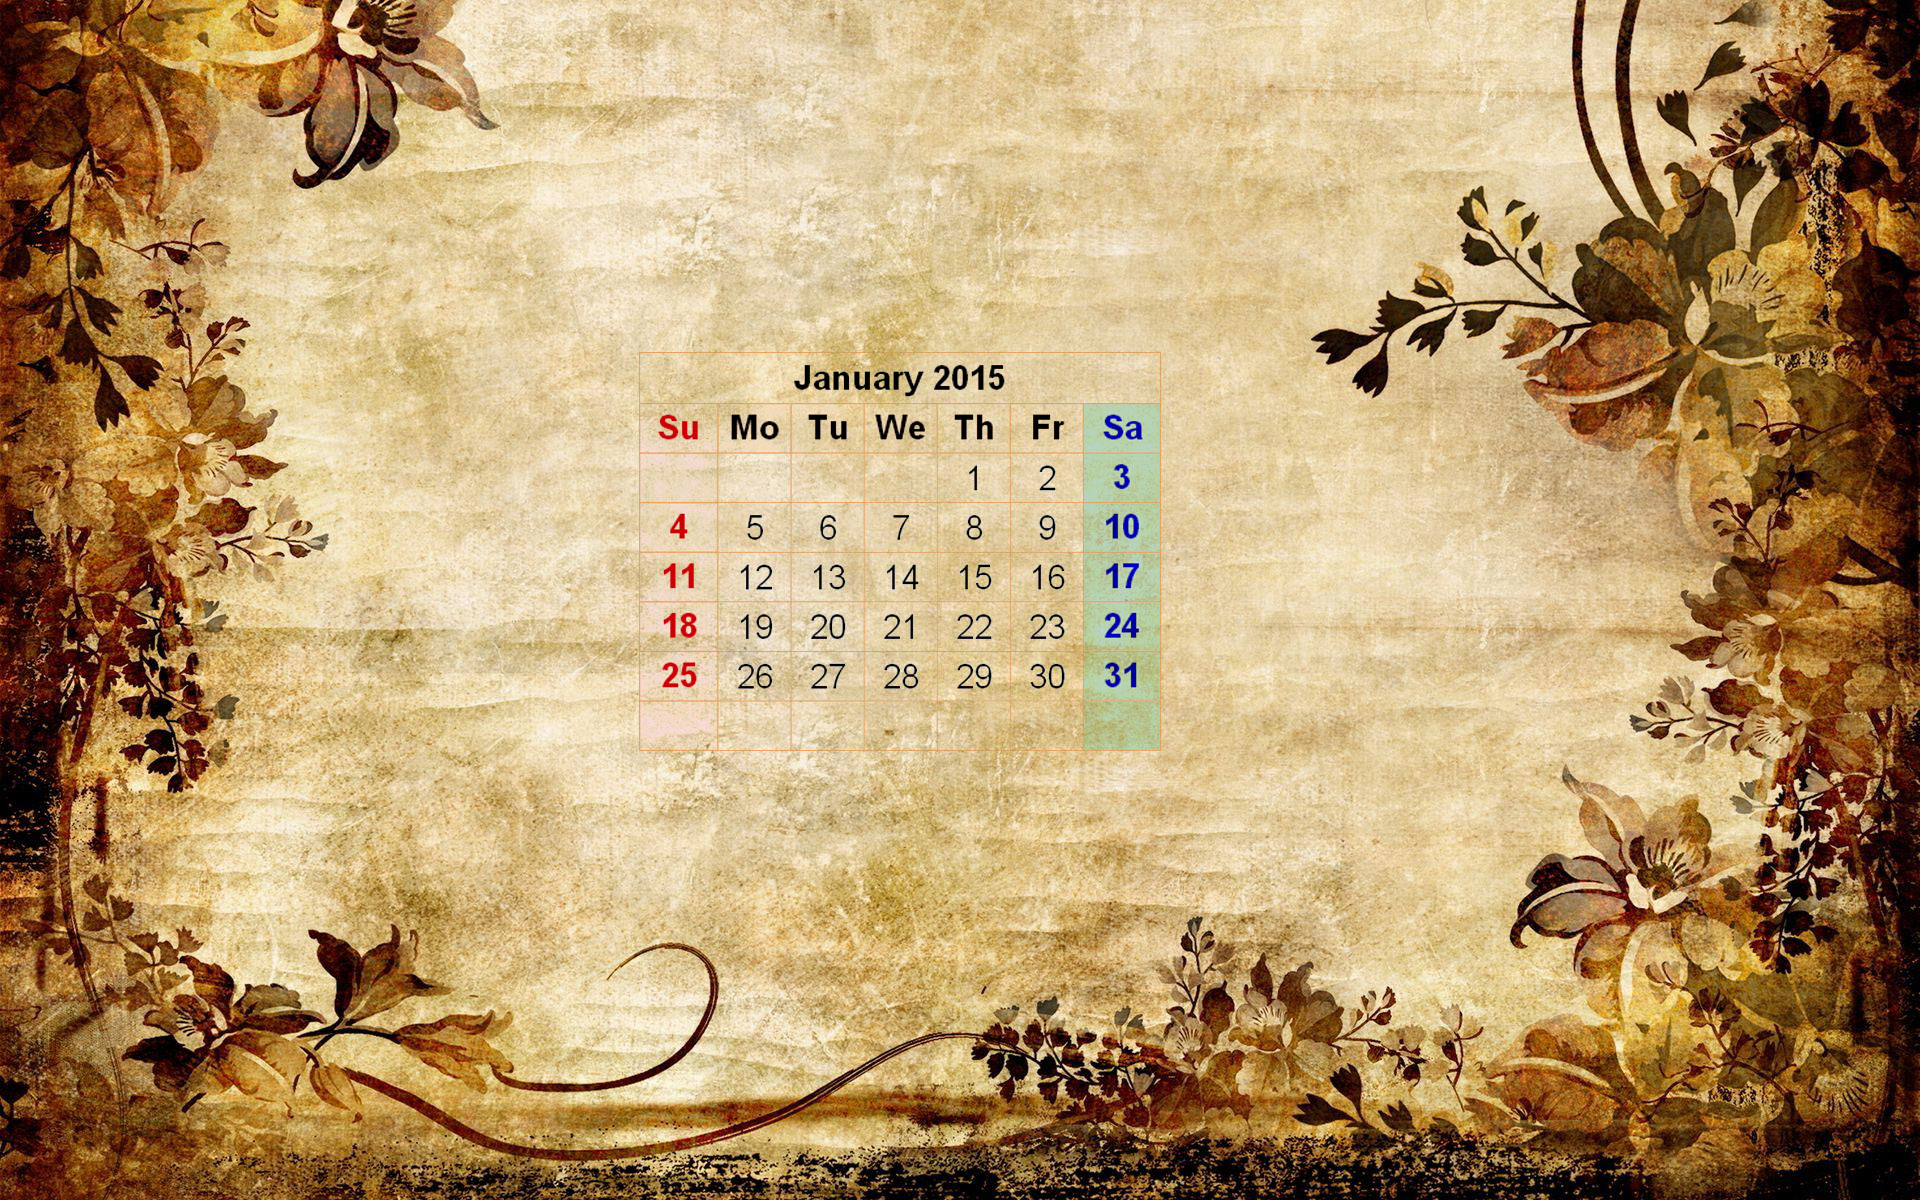 January 2015 Calendar Images and Wallpapers Happy Holidays 2014 1920x1200